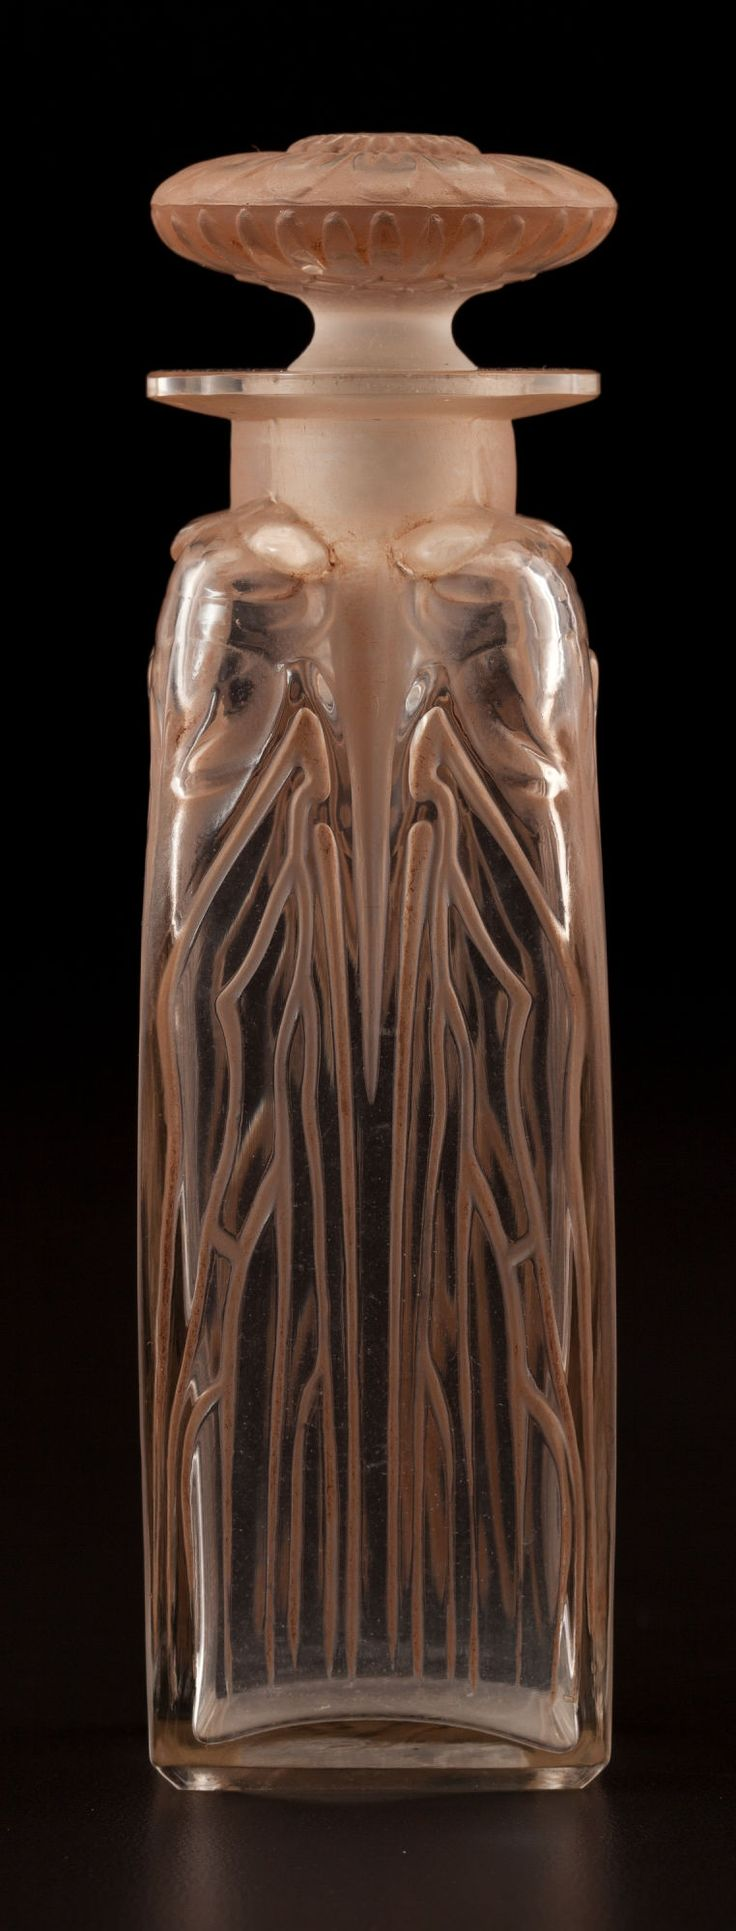 R. LALIQUE. 'QuatreCigales' perfume bottle with sepia patina, circa 1910.